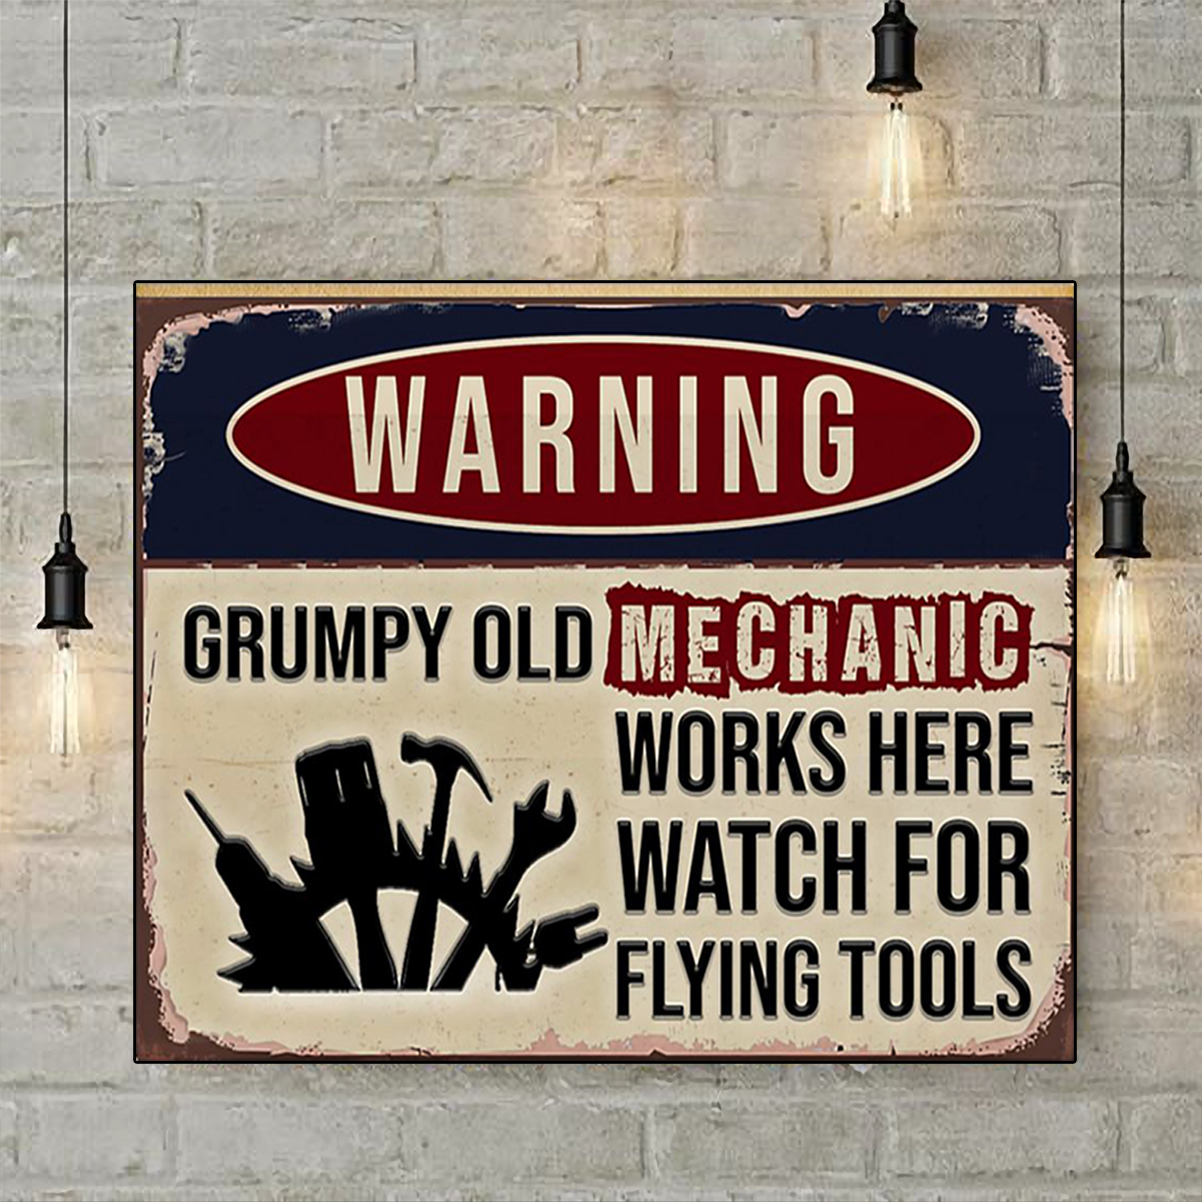 Warning grumpy old mechanic works here watch for flying tool poster A2